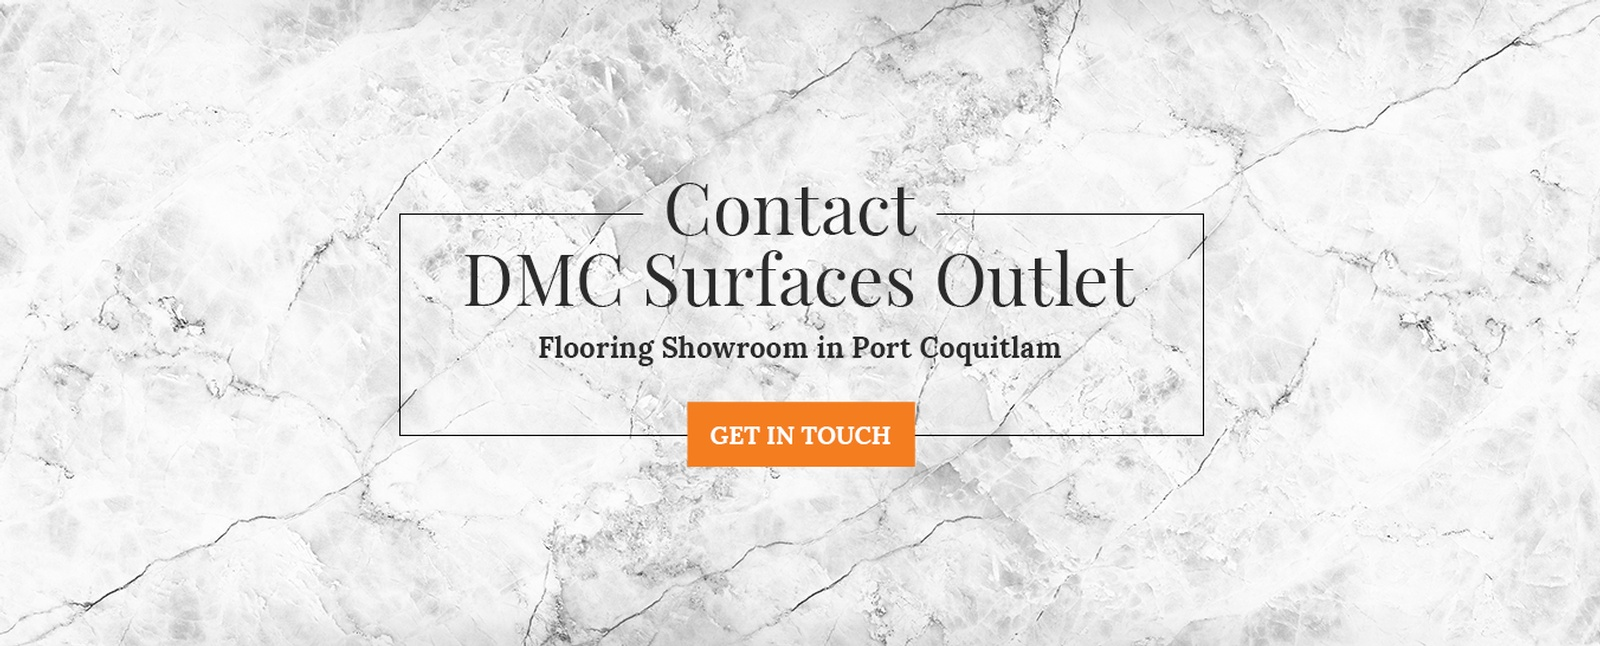 DMC Surfaces Outlet - Flooring Showroom in Port Coquitlam